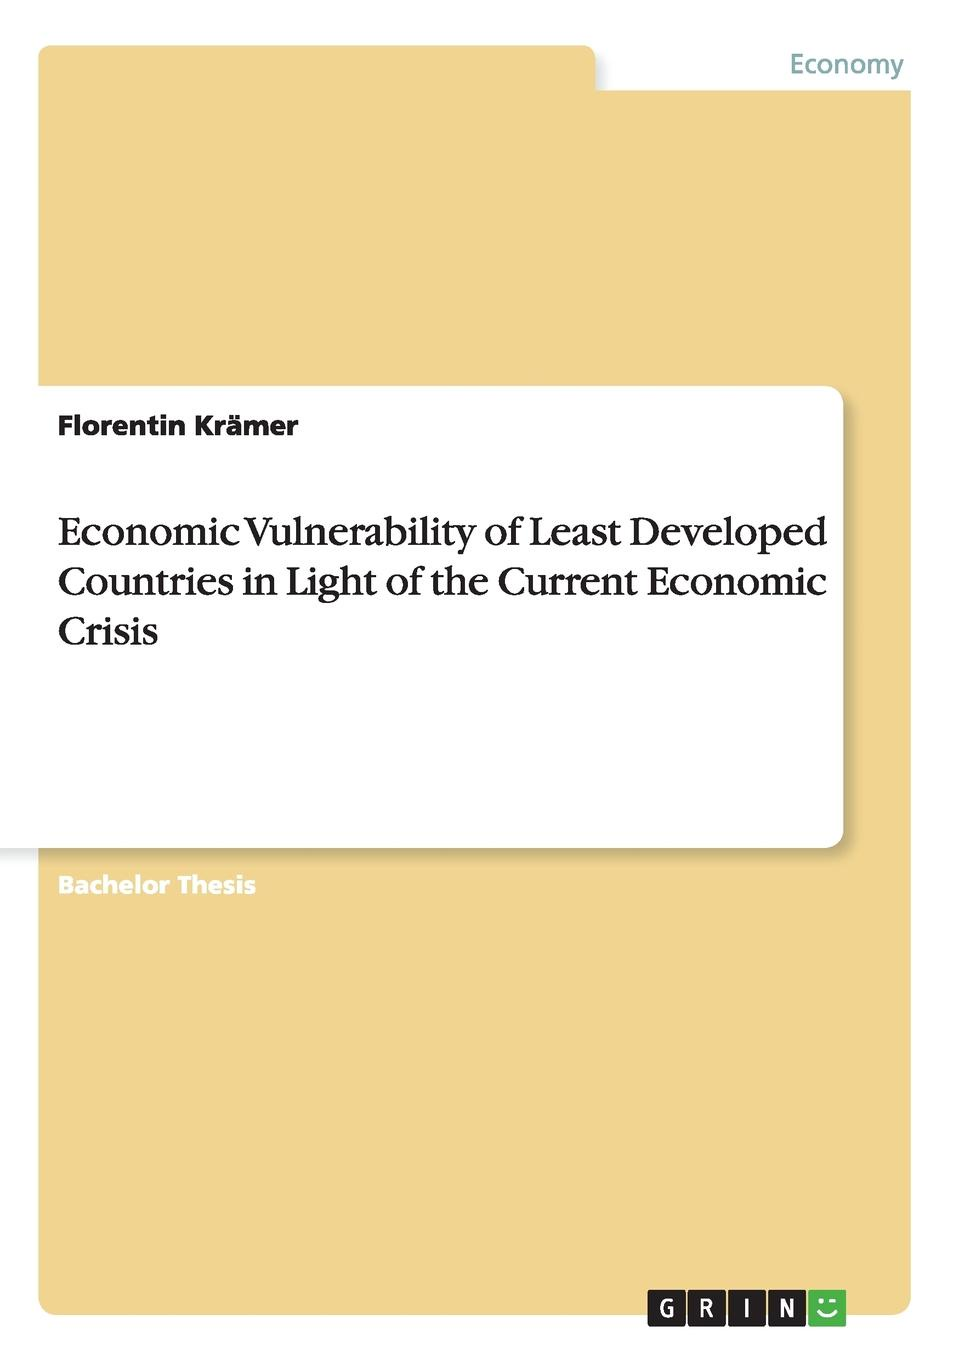 цены на Florentin Krämer Economic Vulnerability of Least Developed Countries in Light of the Current Economic Crisis  в интернет-магазинах